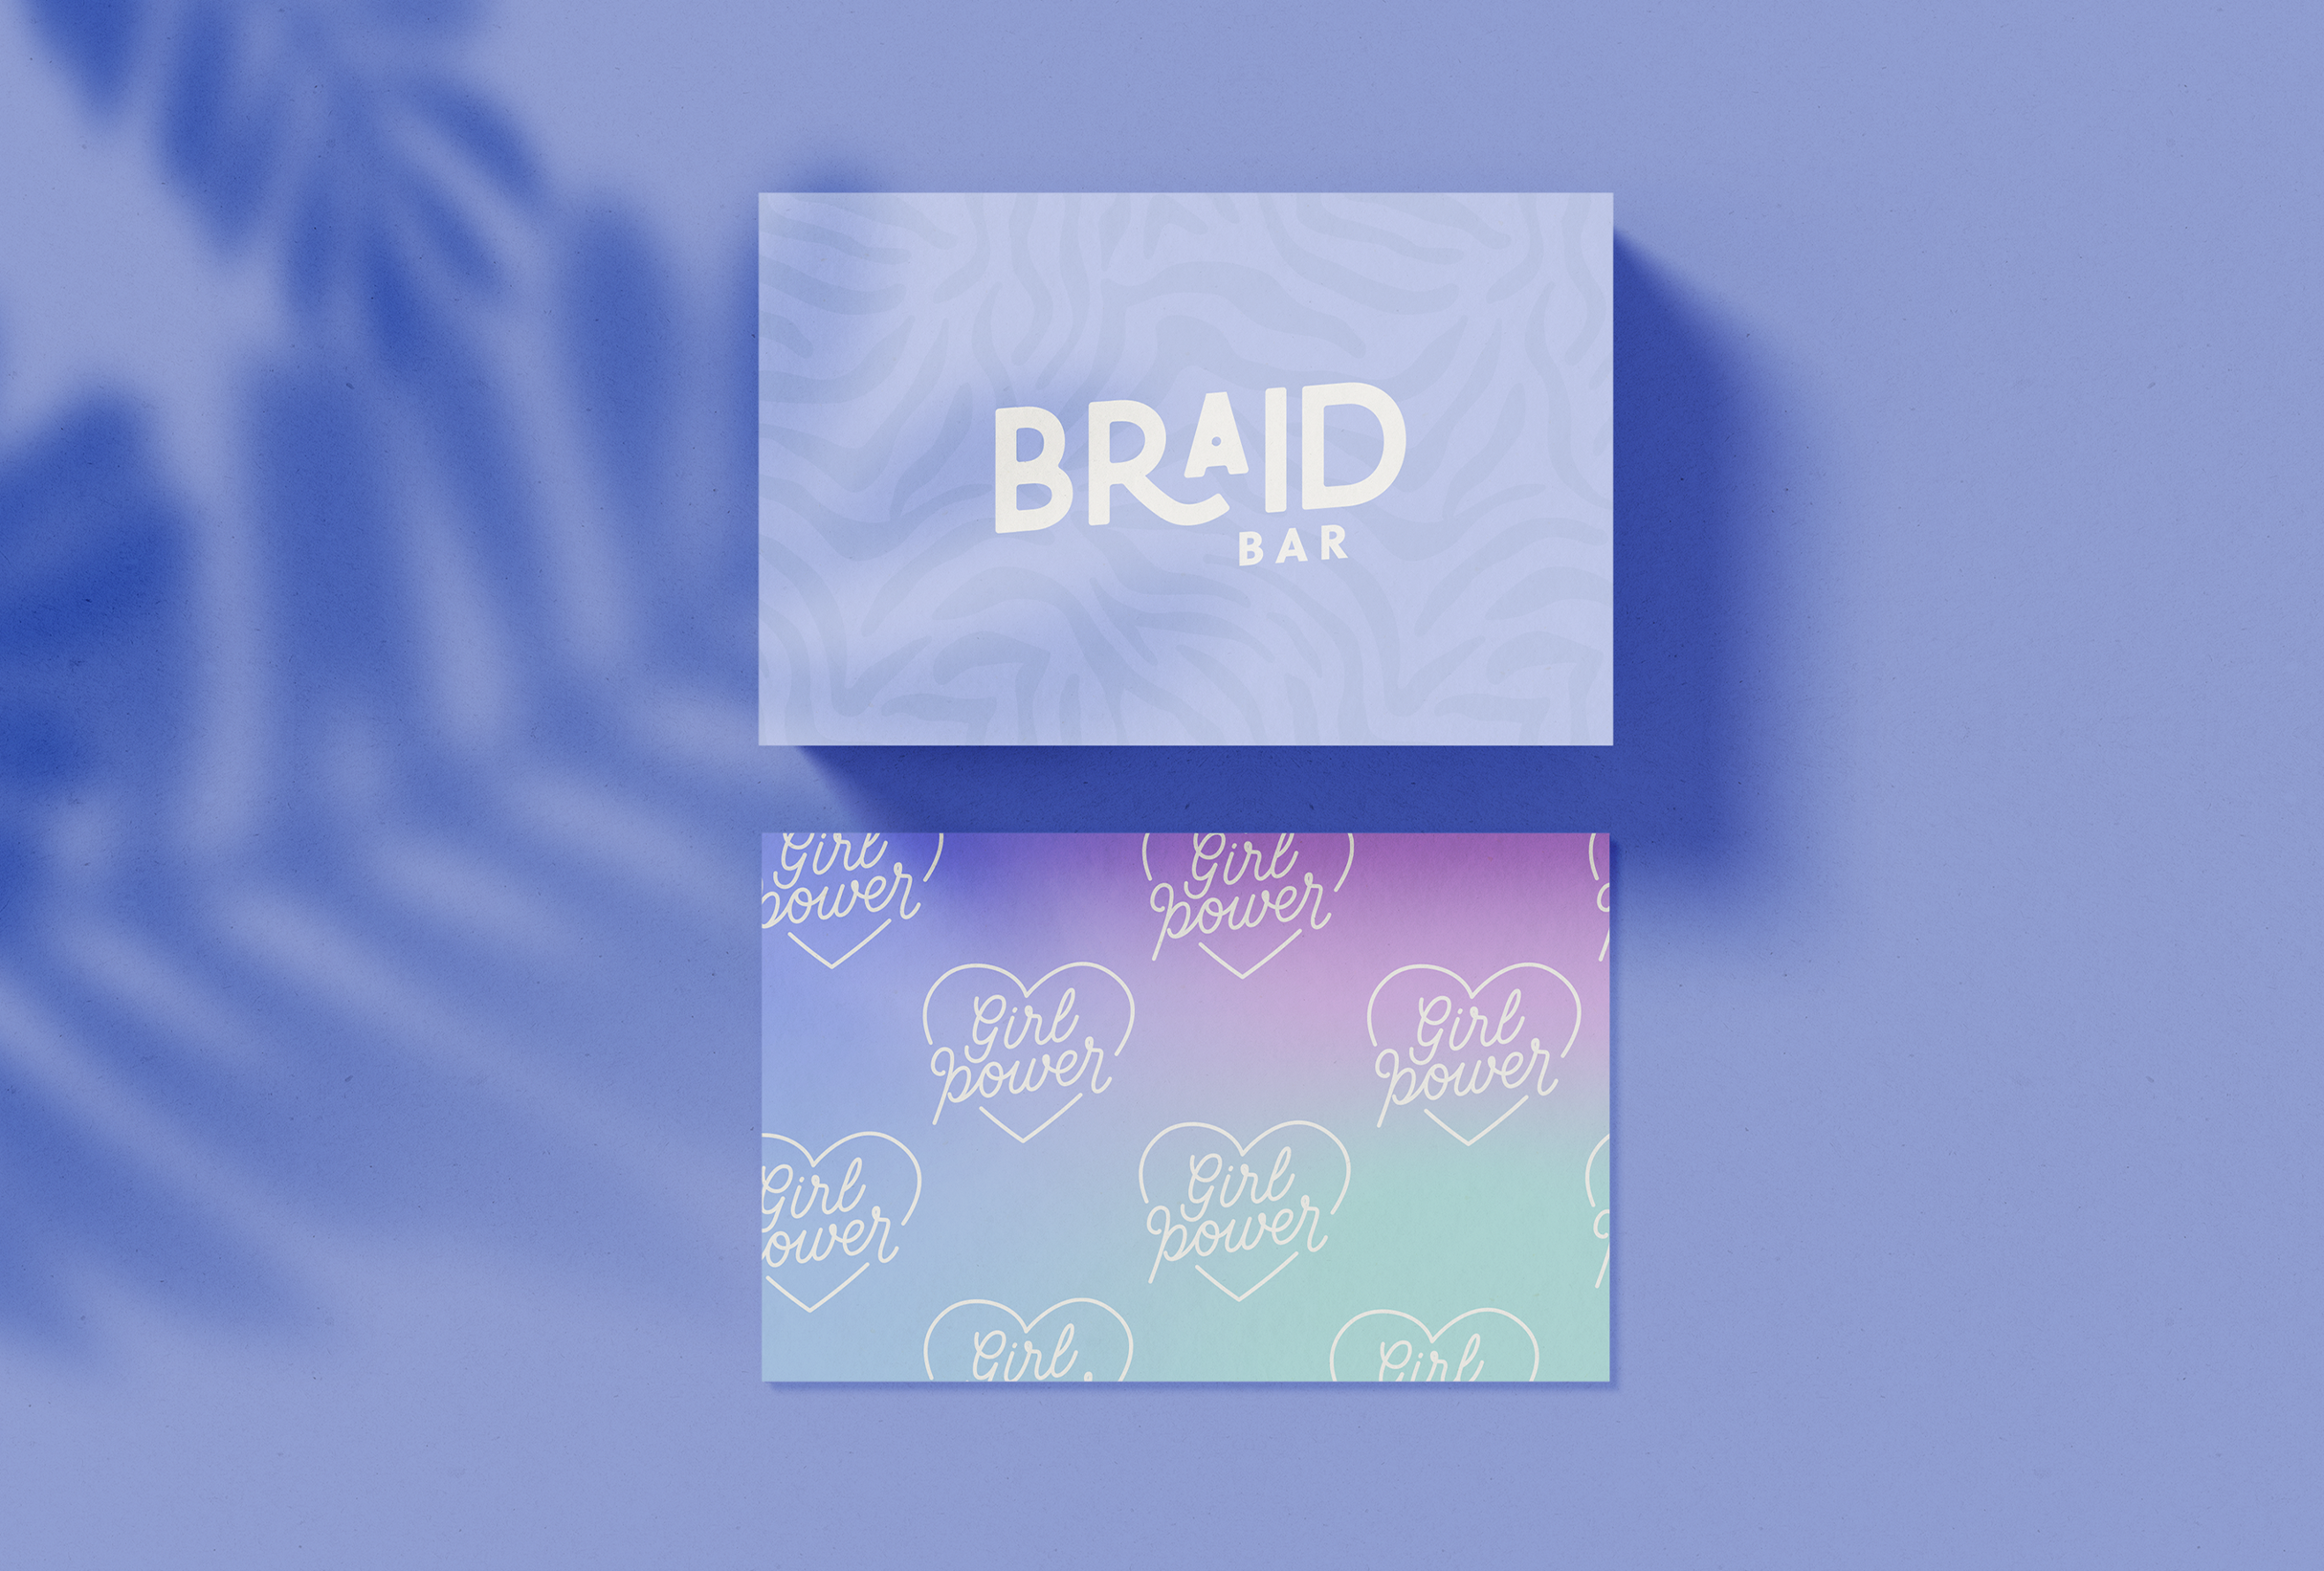 Business card design for Braid Bar, providing a premium experience and high-quality braiding services - designed by Wiltshire-based graphic designer, Kaye Huett